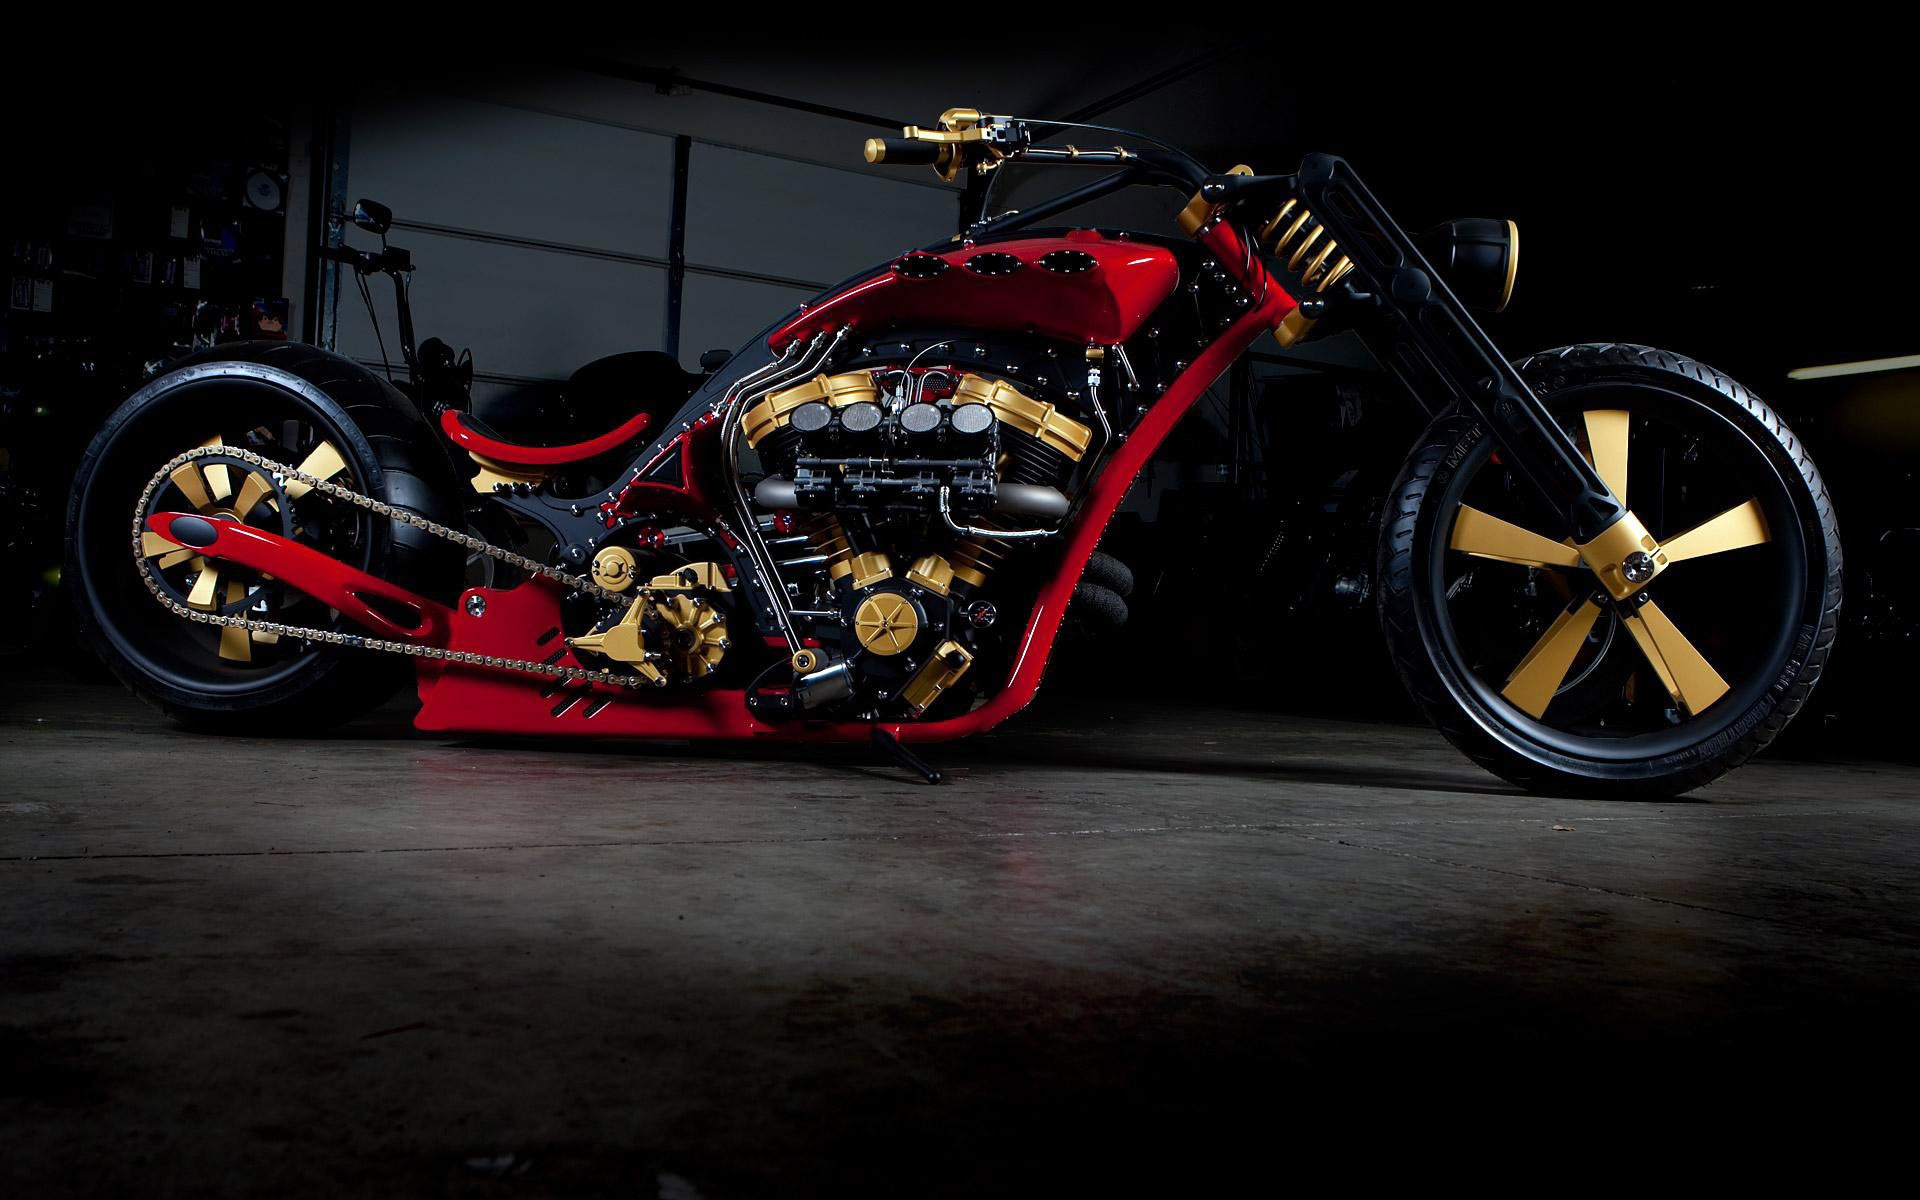 chopper motorcycles wallpapers 1920x1200 1920x1200